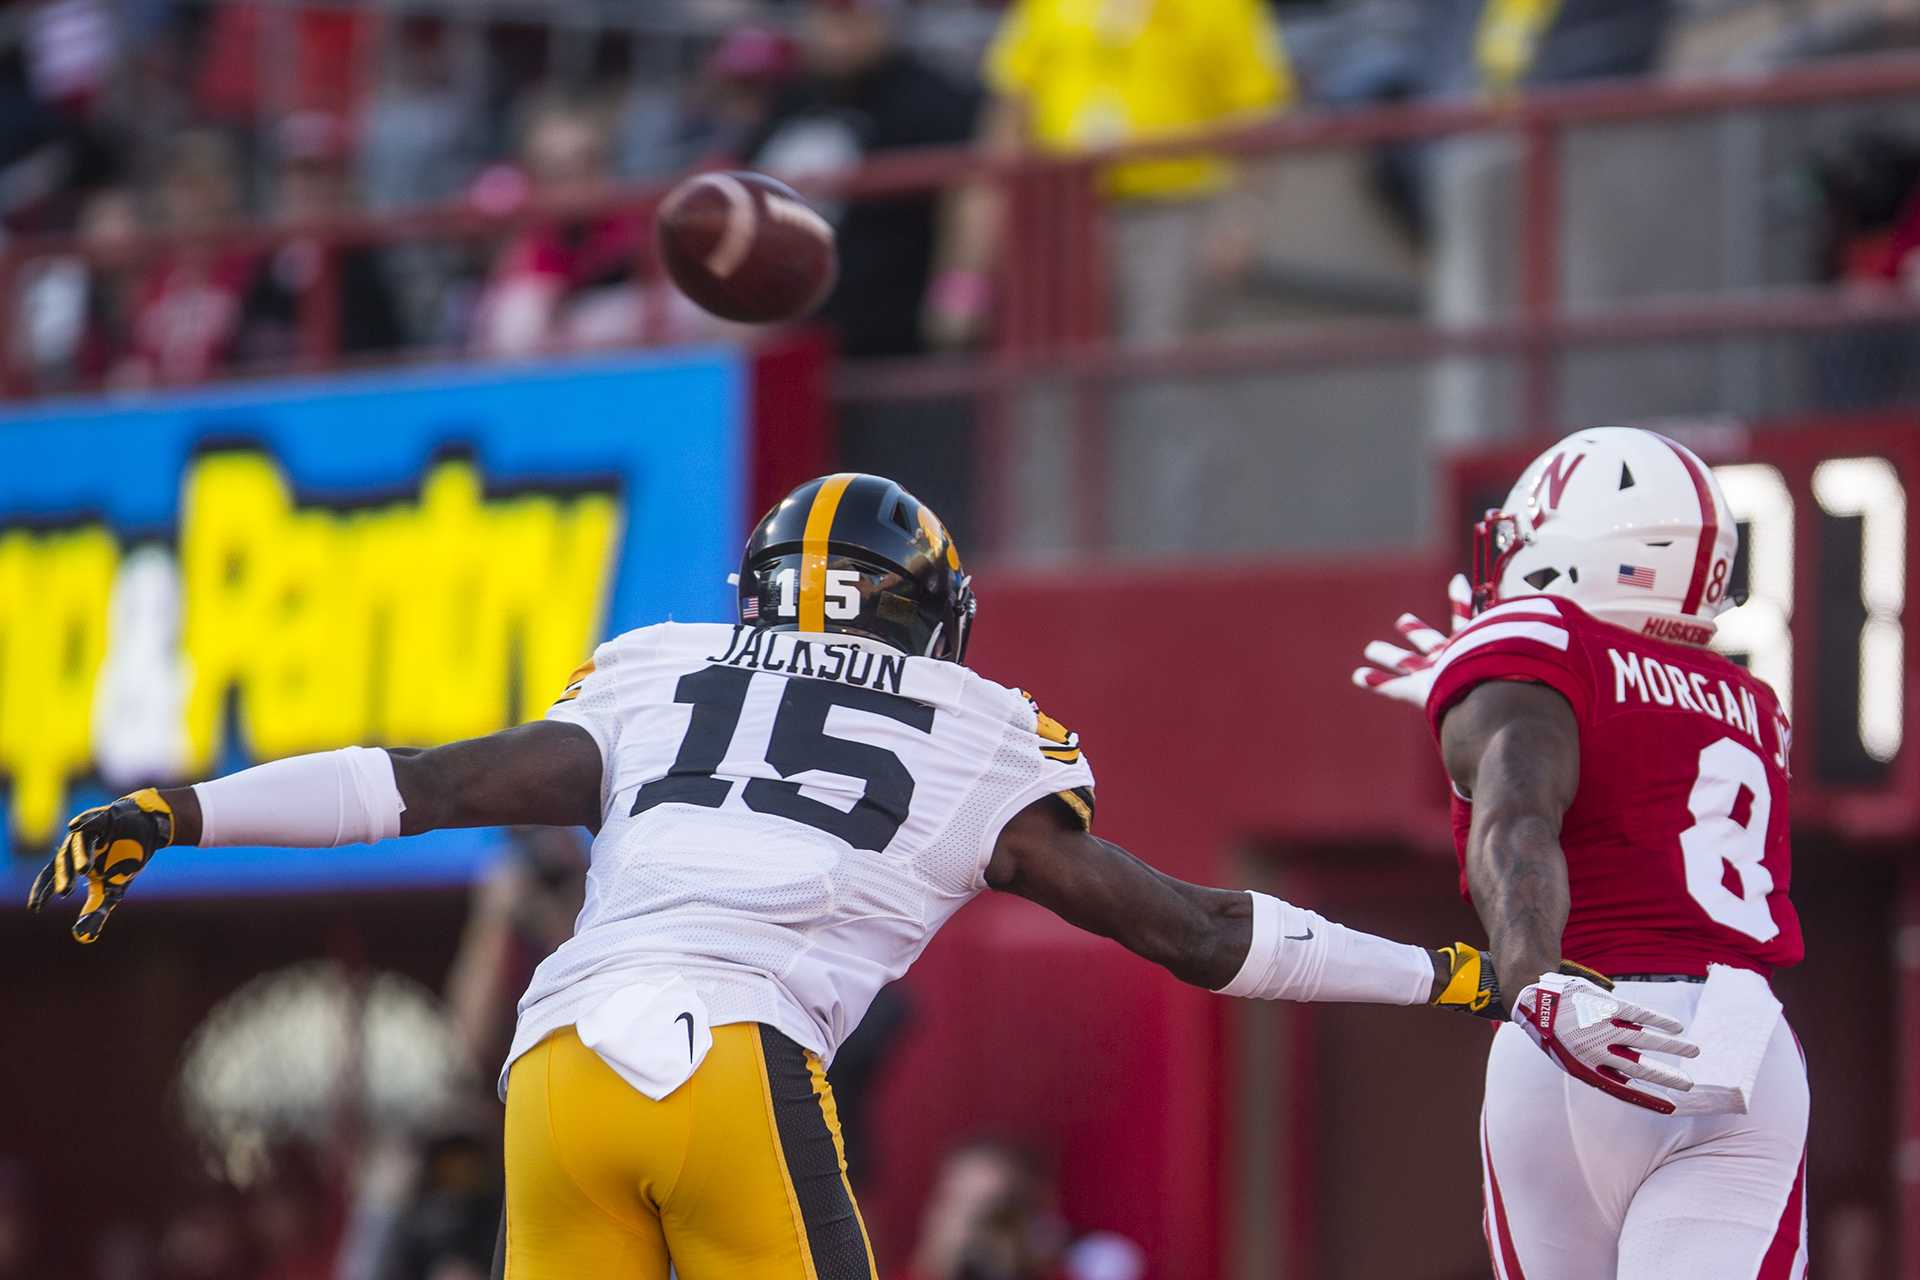 Nebraska wide receiver Stanley Morgan Jr. makes a one handed catch for a touchdown during Iowa's game against Nebraska at Memorial Stadium on Friday, Nov. 24th, 2017. The Hawkeyes defeated the Cornhuskers 56-14. (Nick Rohlman/The Daily Iowan)